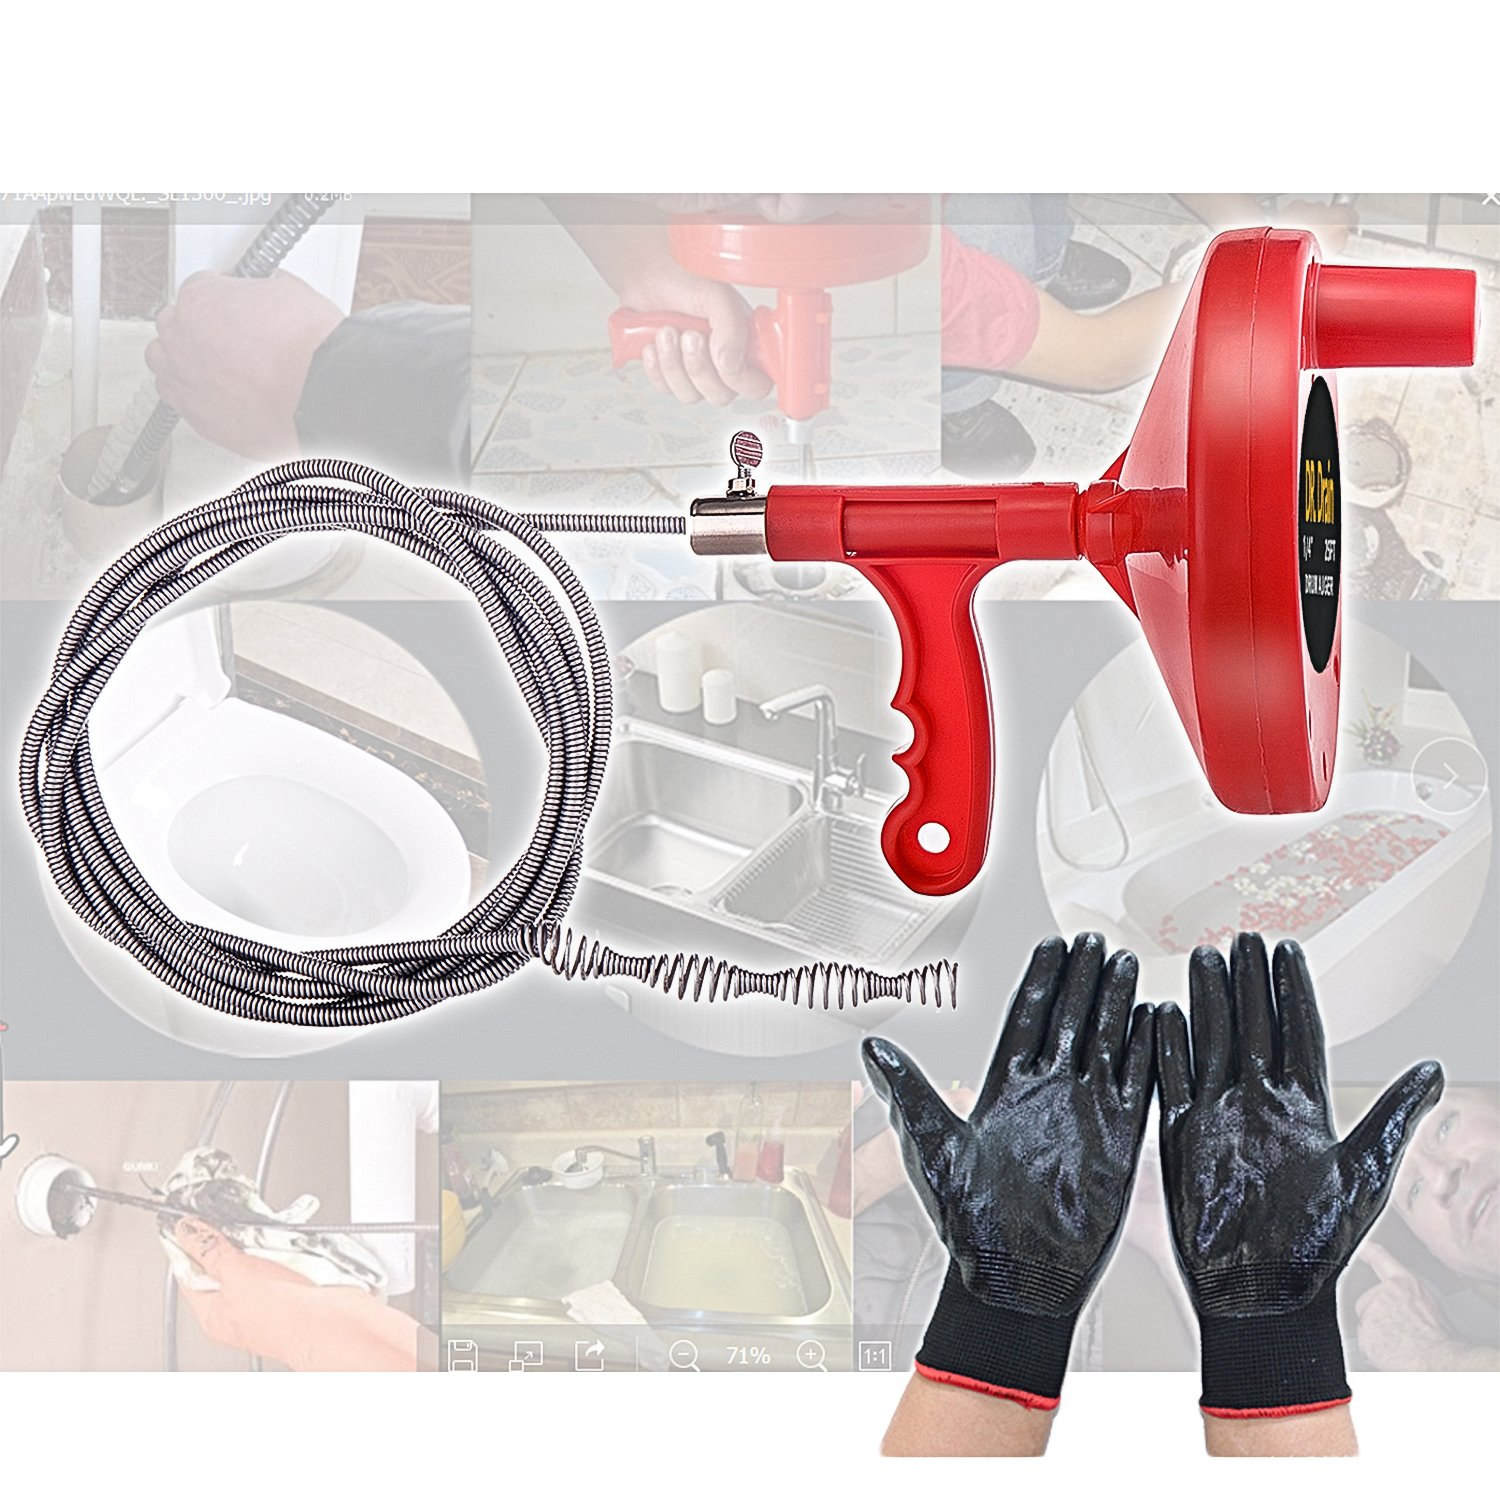 Dr.Drain VEDRAU01A1 Augers Plumbing Snake Pipe Cleaner Household Spring Cable with Gloves, Red by Dr.Drain